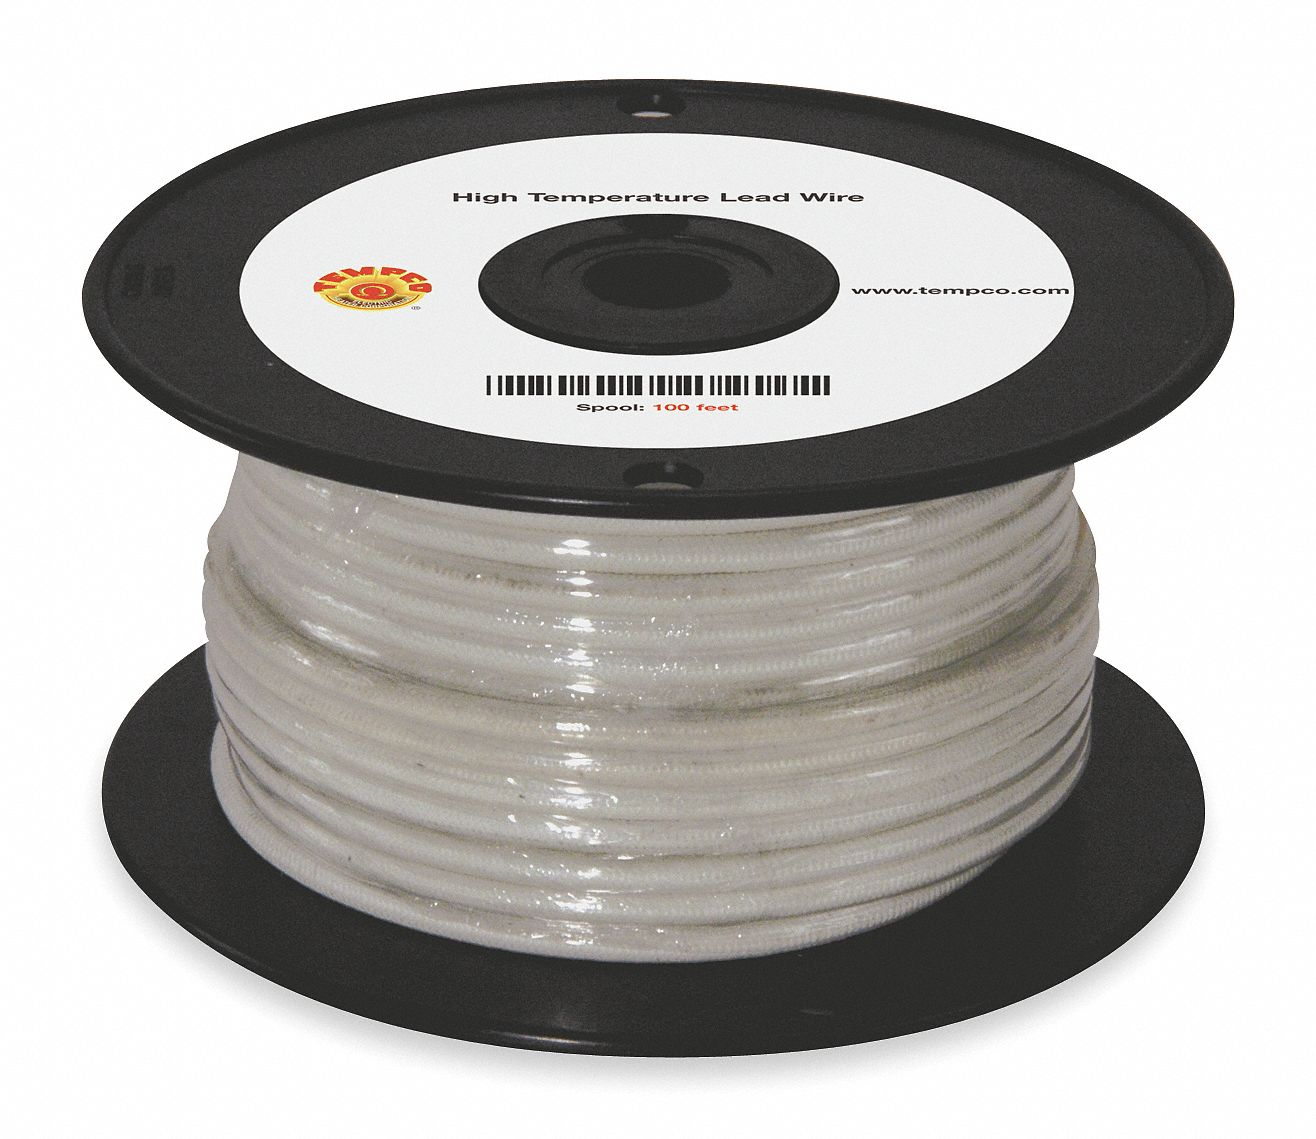 Tempco 100 Ft 600vac High Temperature Lead Wire With